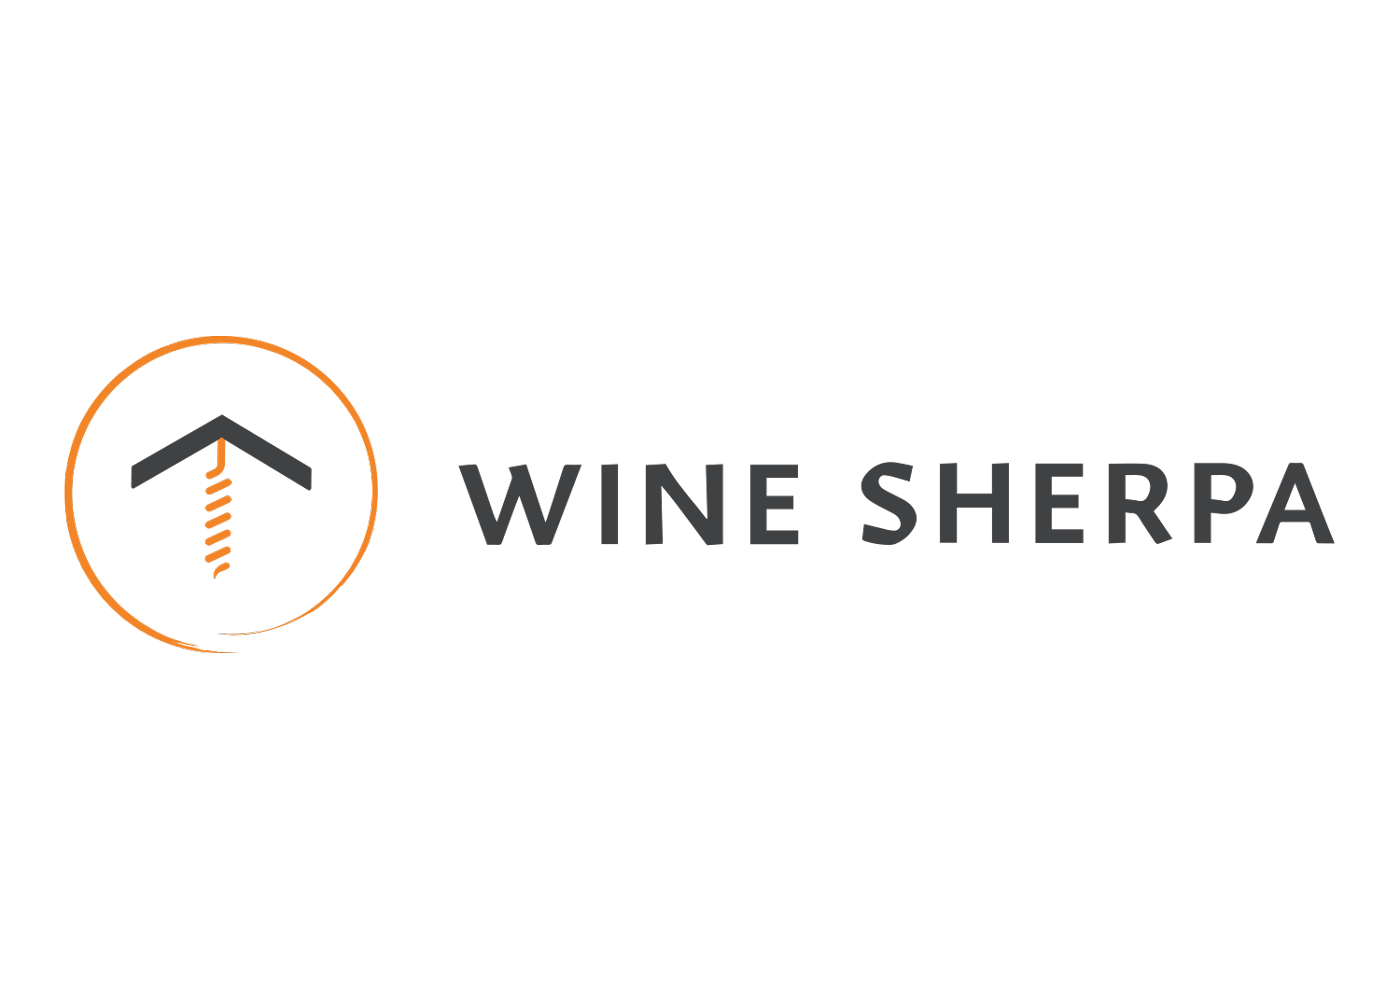 Wine Sherpa Logo - The Heads of State